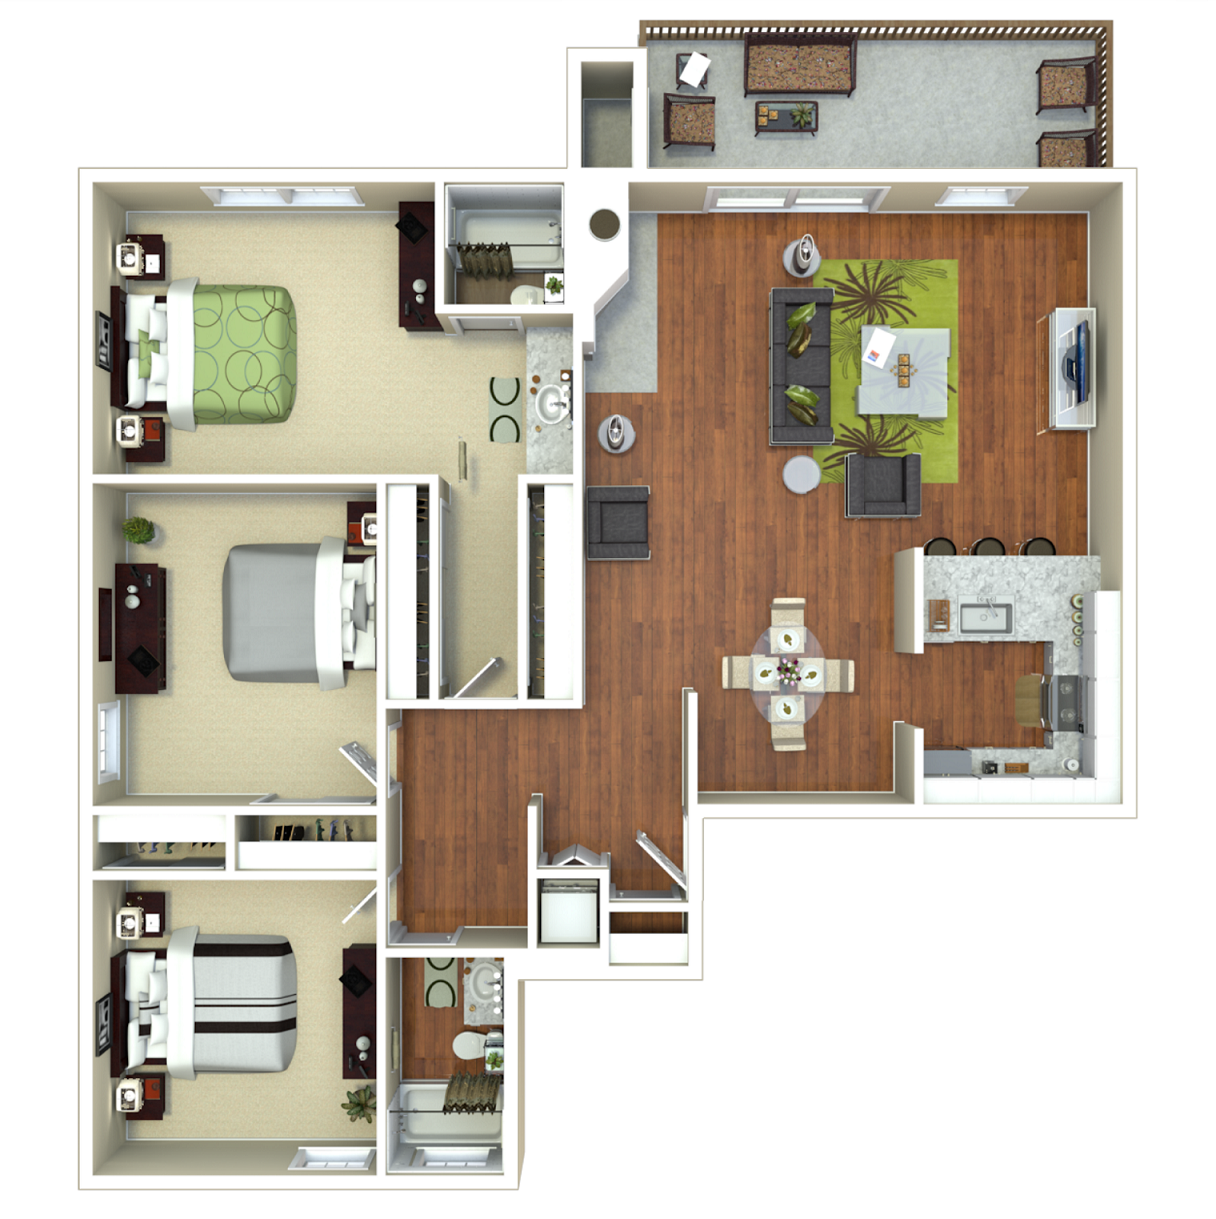 3 Bed 2 Bath (C) Floor Plan 11